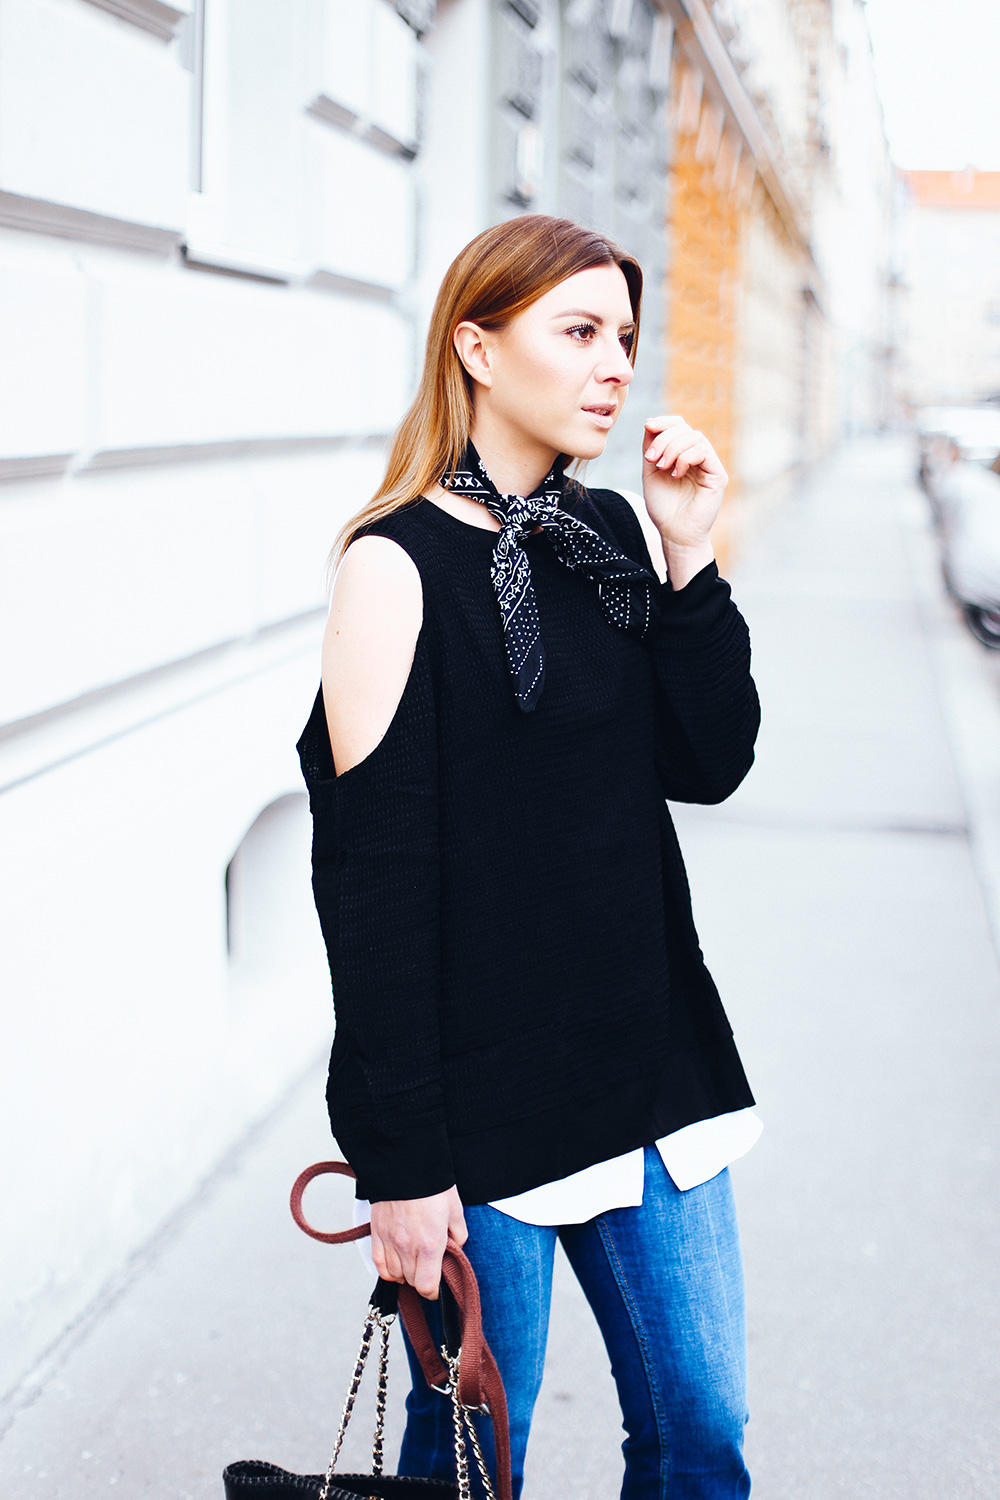 Streetstyle mit Kick Flare Jeans, schwarze Mules, Tory Burch Handtasche, Cold Shoulder Pullover, Bandana, Fashion Blog, Fashion Magazine, Modeblog, whoismocca.com